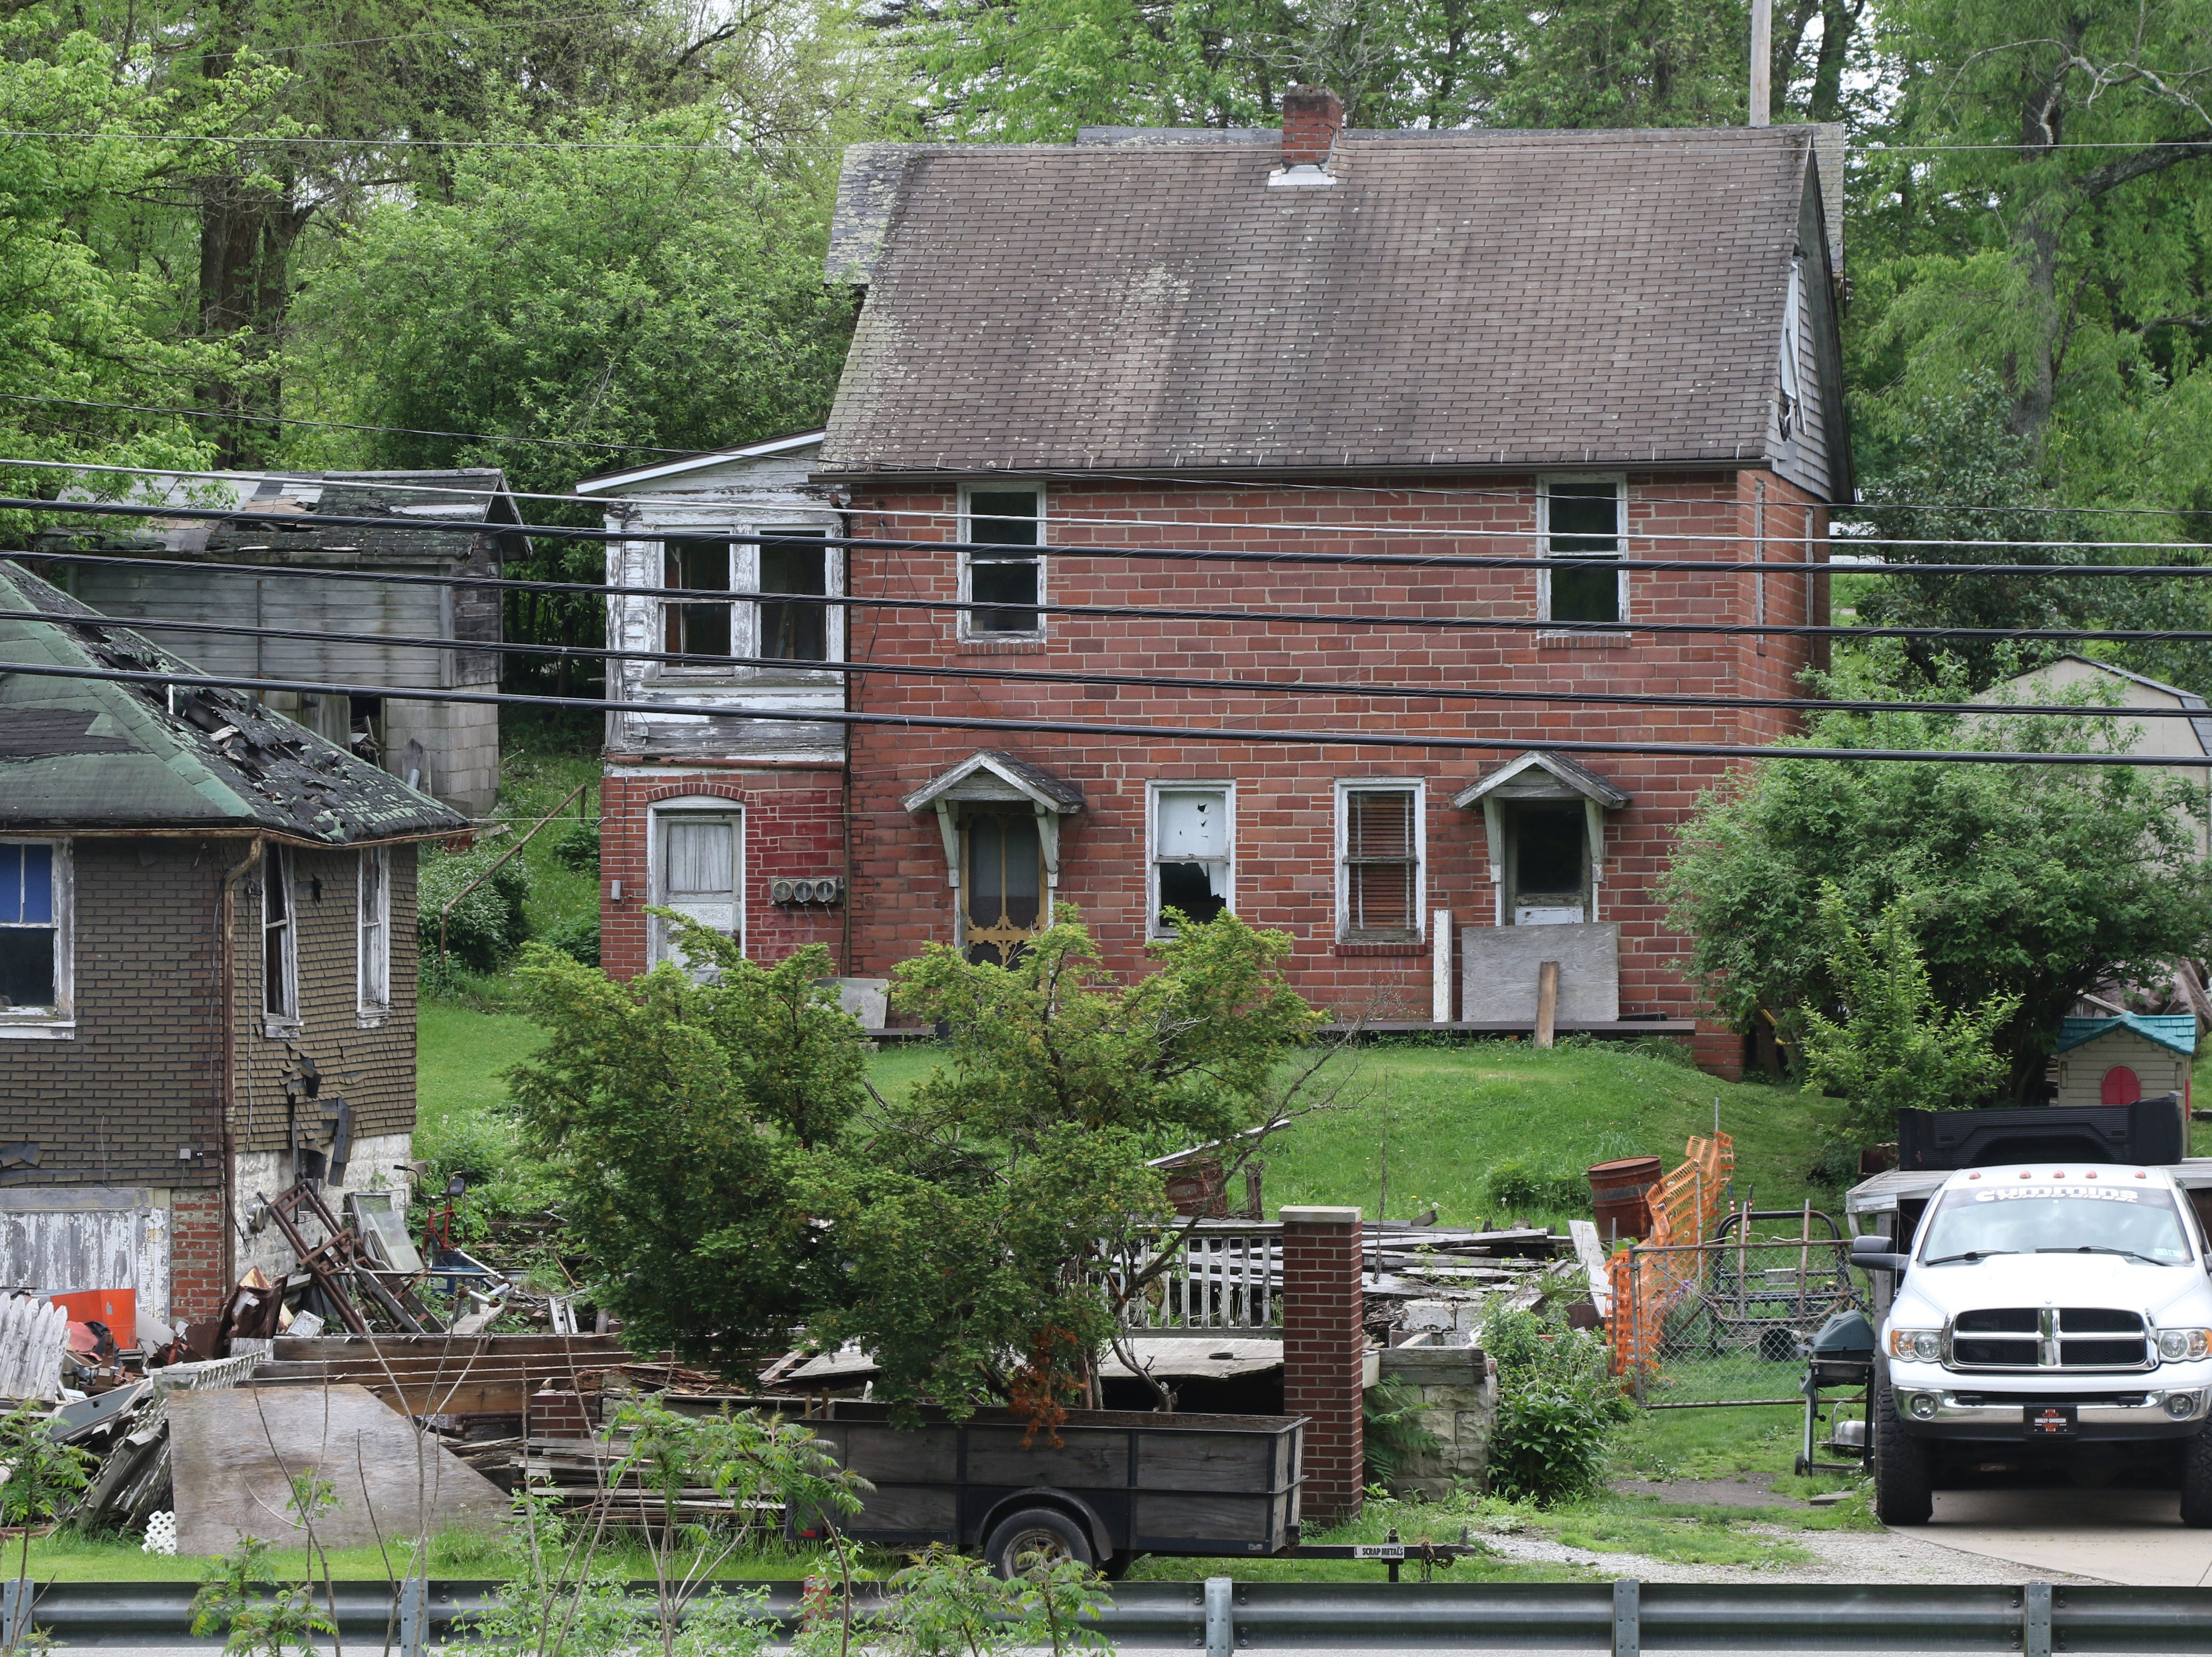 Homes in the once busy coal town of Marianna.